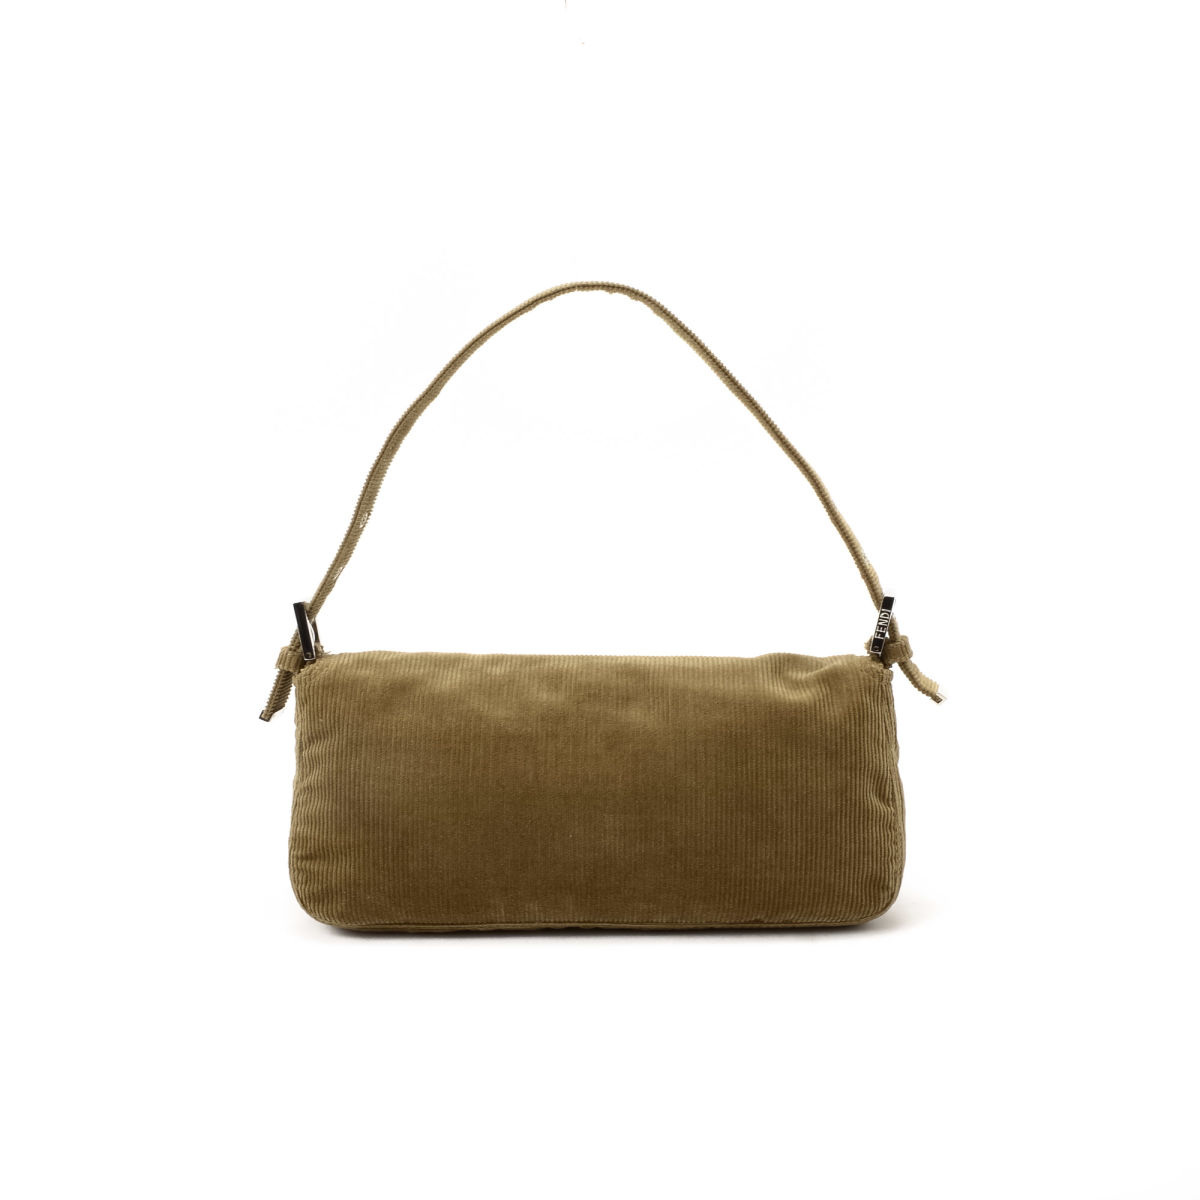 f9433035fe51 Fendi Baguette. LXRandCo guarantees the authenticity of this vintage Fendi  Baguette shoulder bag. Crafted in corduroy ...